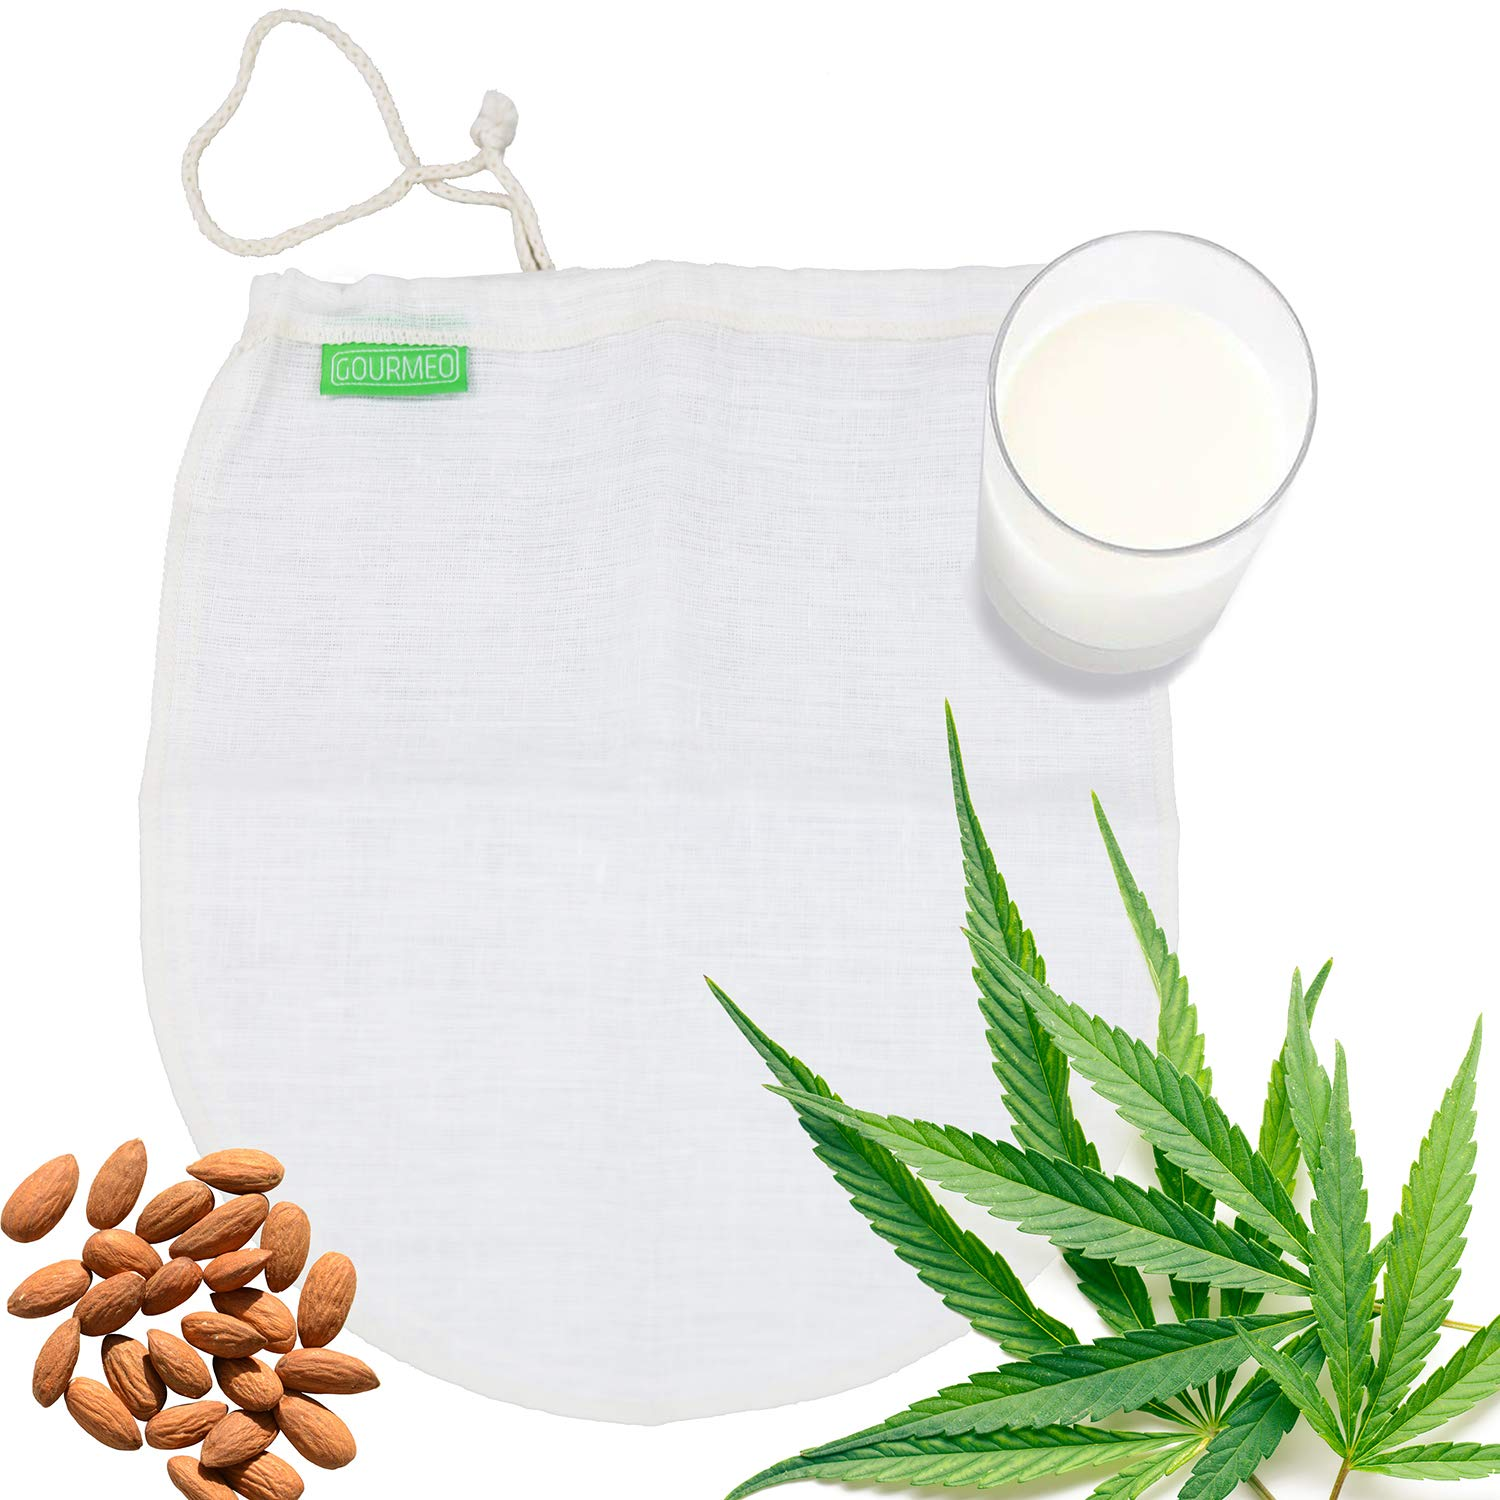 GOURMEO Hemp Nut Milk Bag, reusable, for smooth filtration and production of nut milk, fruit and vegetable juices | hemp mesh filter bag, food strainer, filtration straining cloth eSpring GmbH